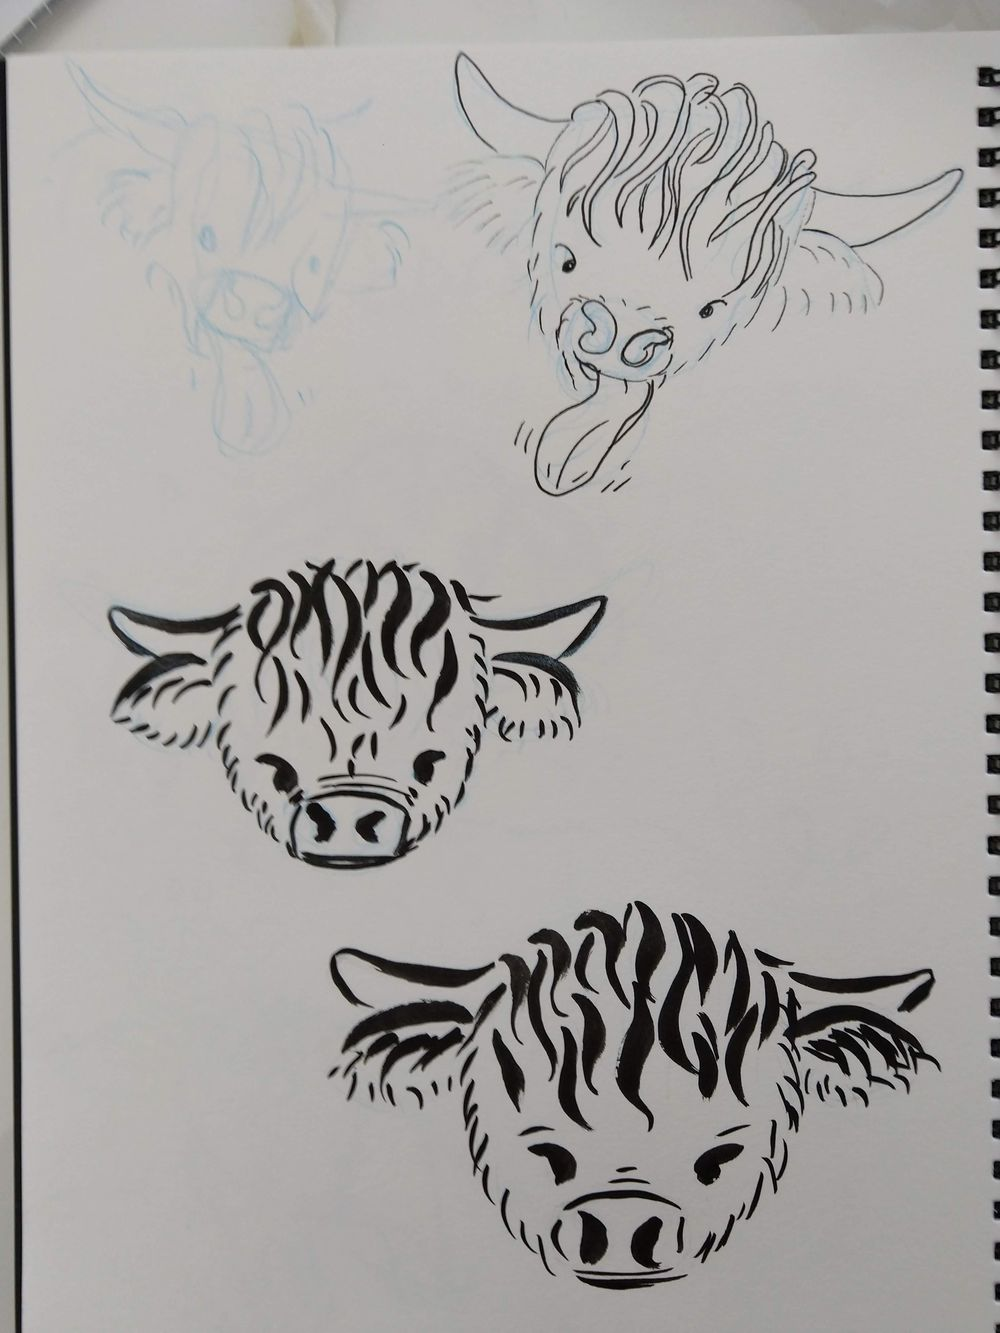 A Wee Coo - image 4 - student project